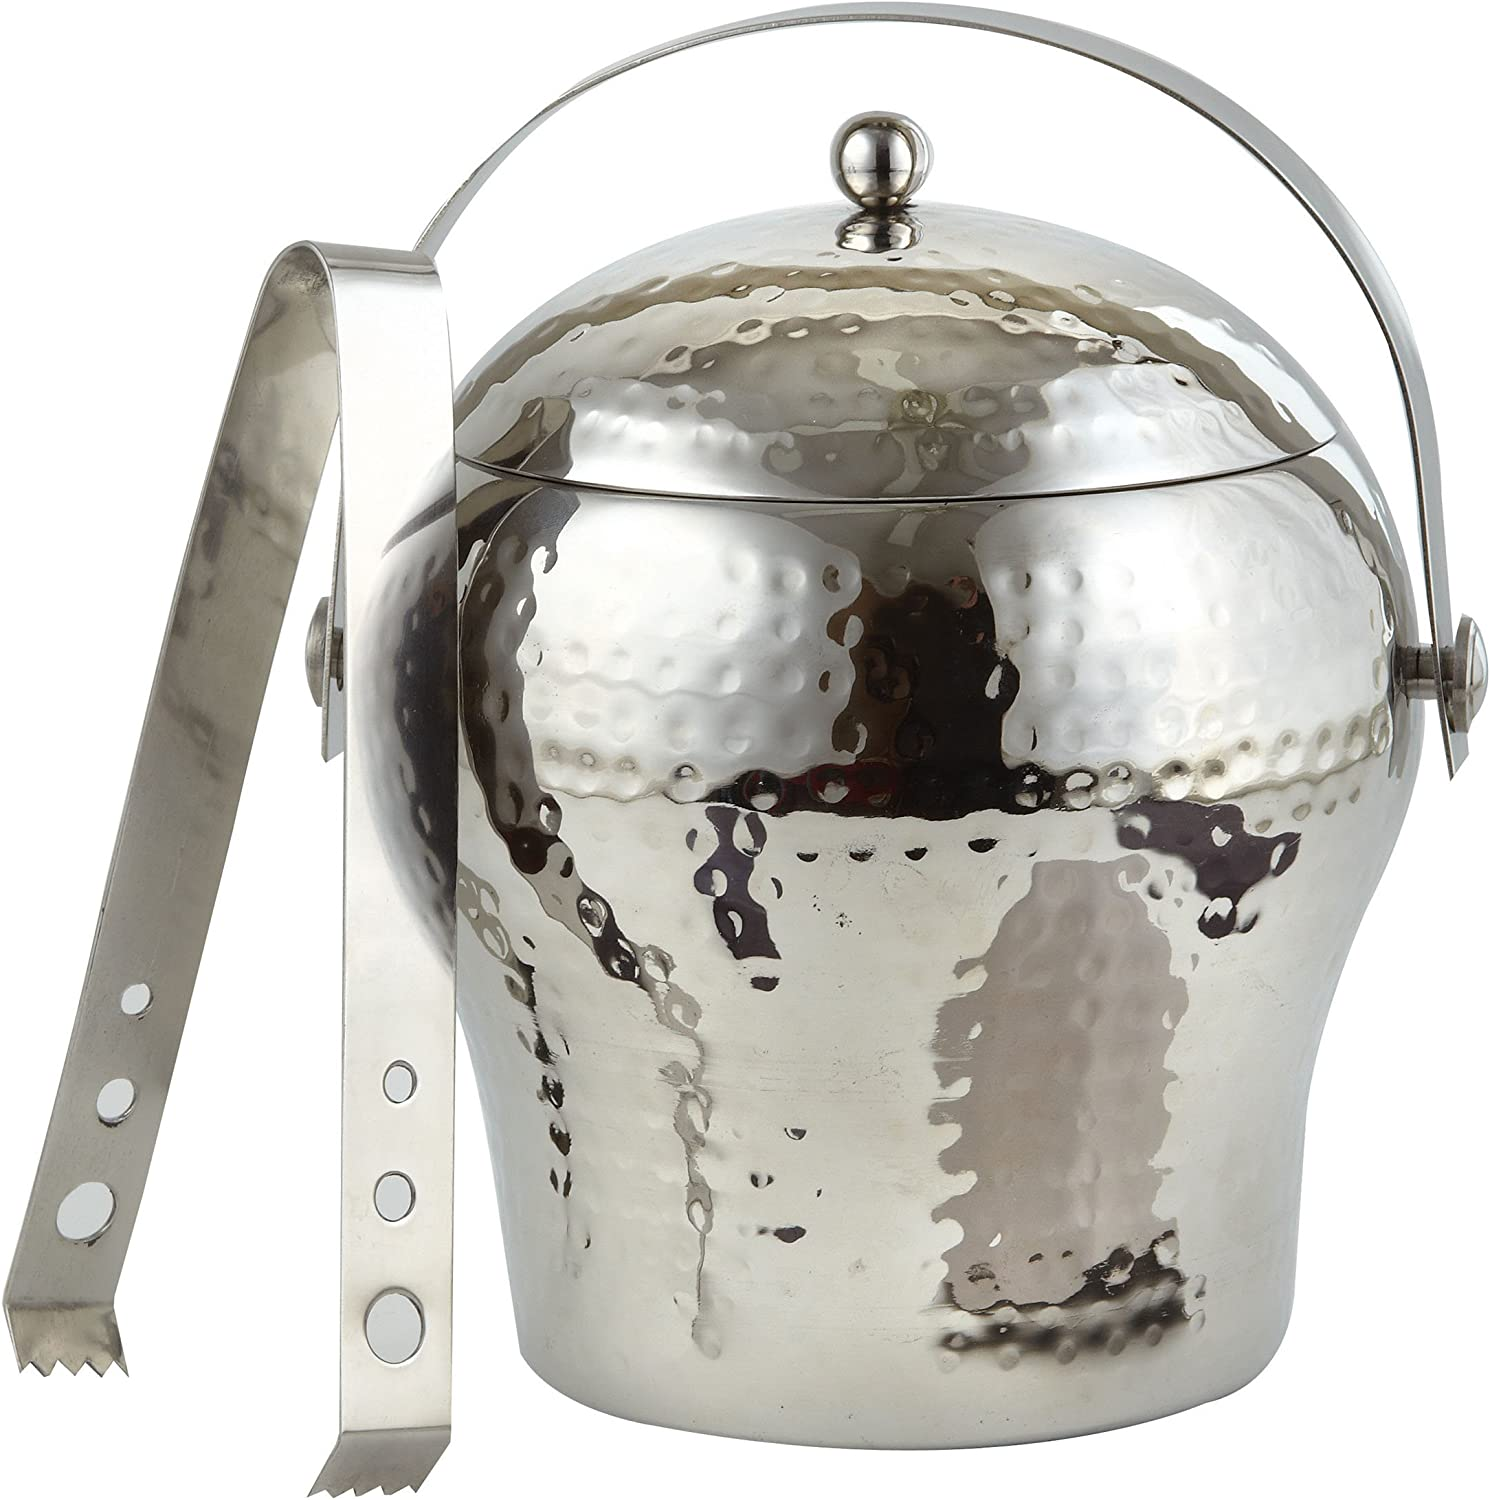 Elegance Hammered Stainless Steel 1.5 Qt Ice Bucket Double Wall w/Tongs